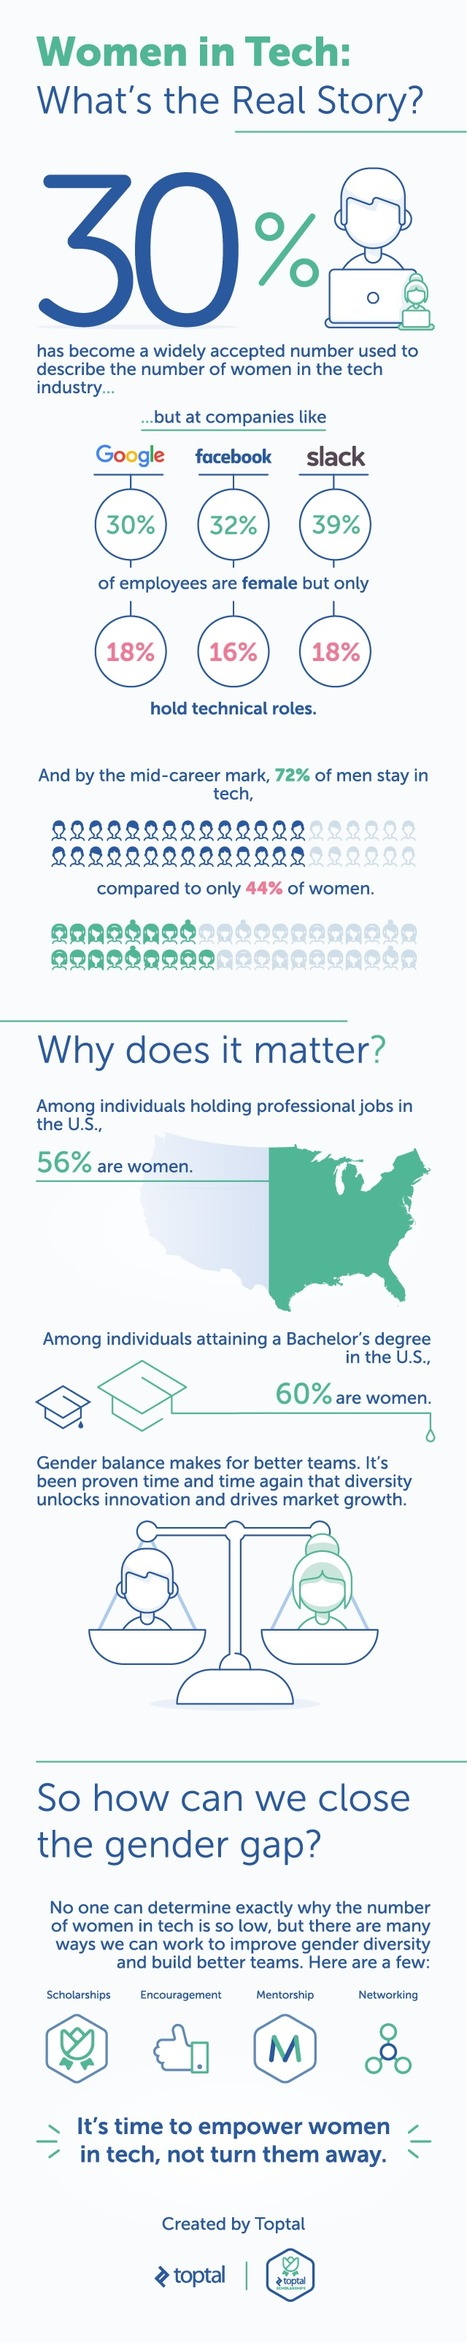 Women in Tech - The Real Story | Infographics and Data Visualization | Scoop.it